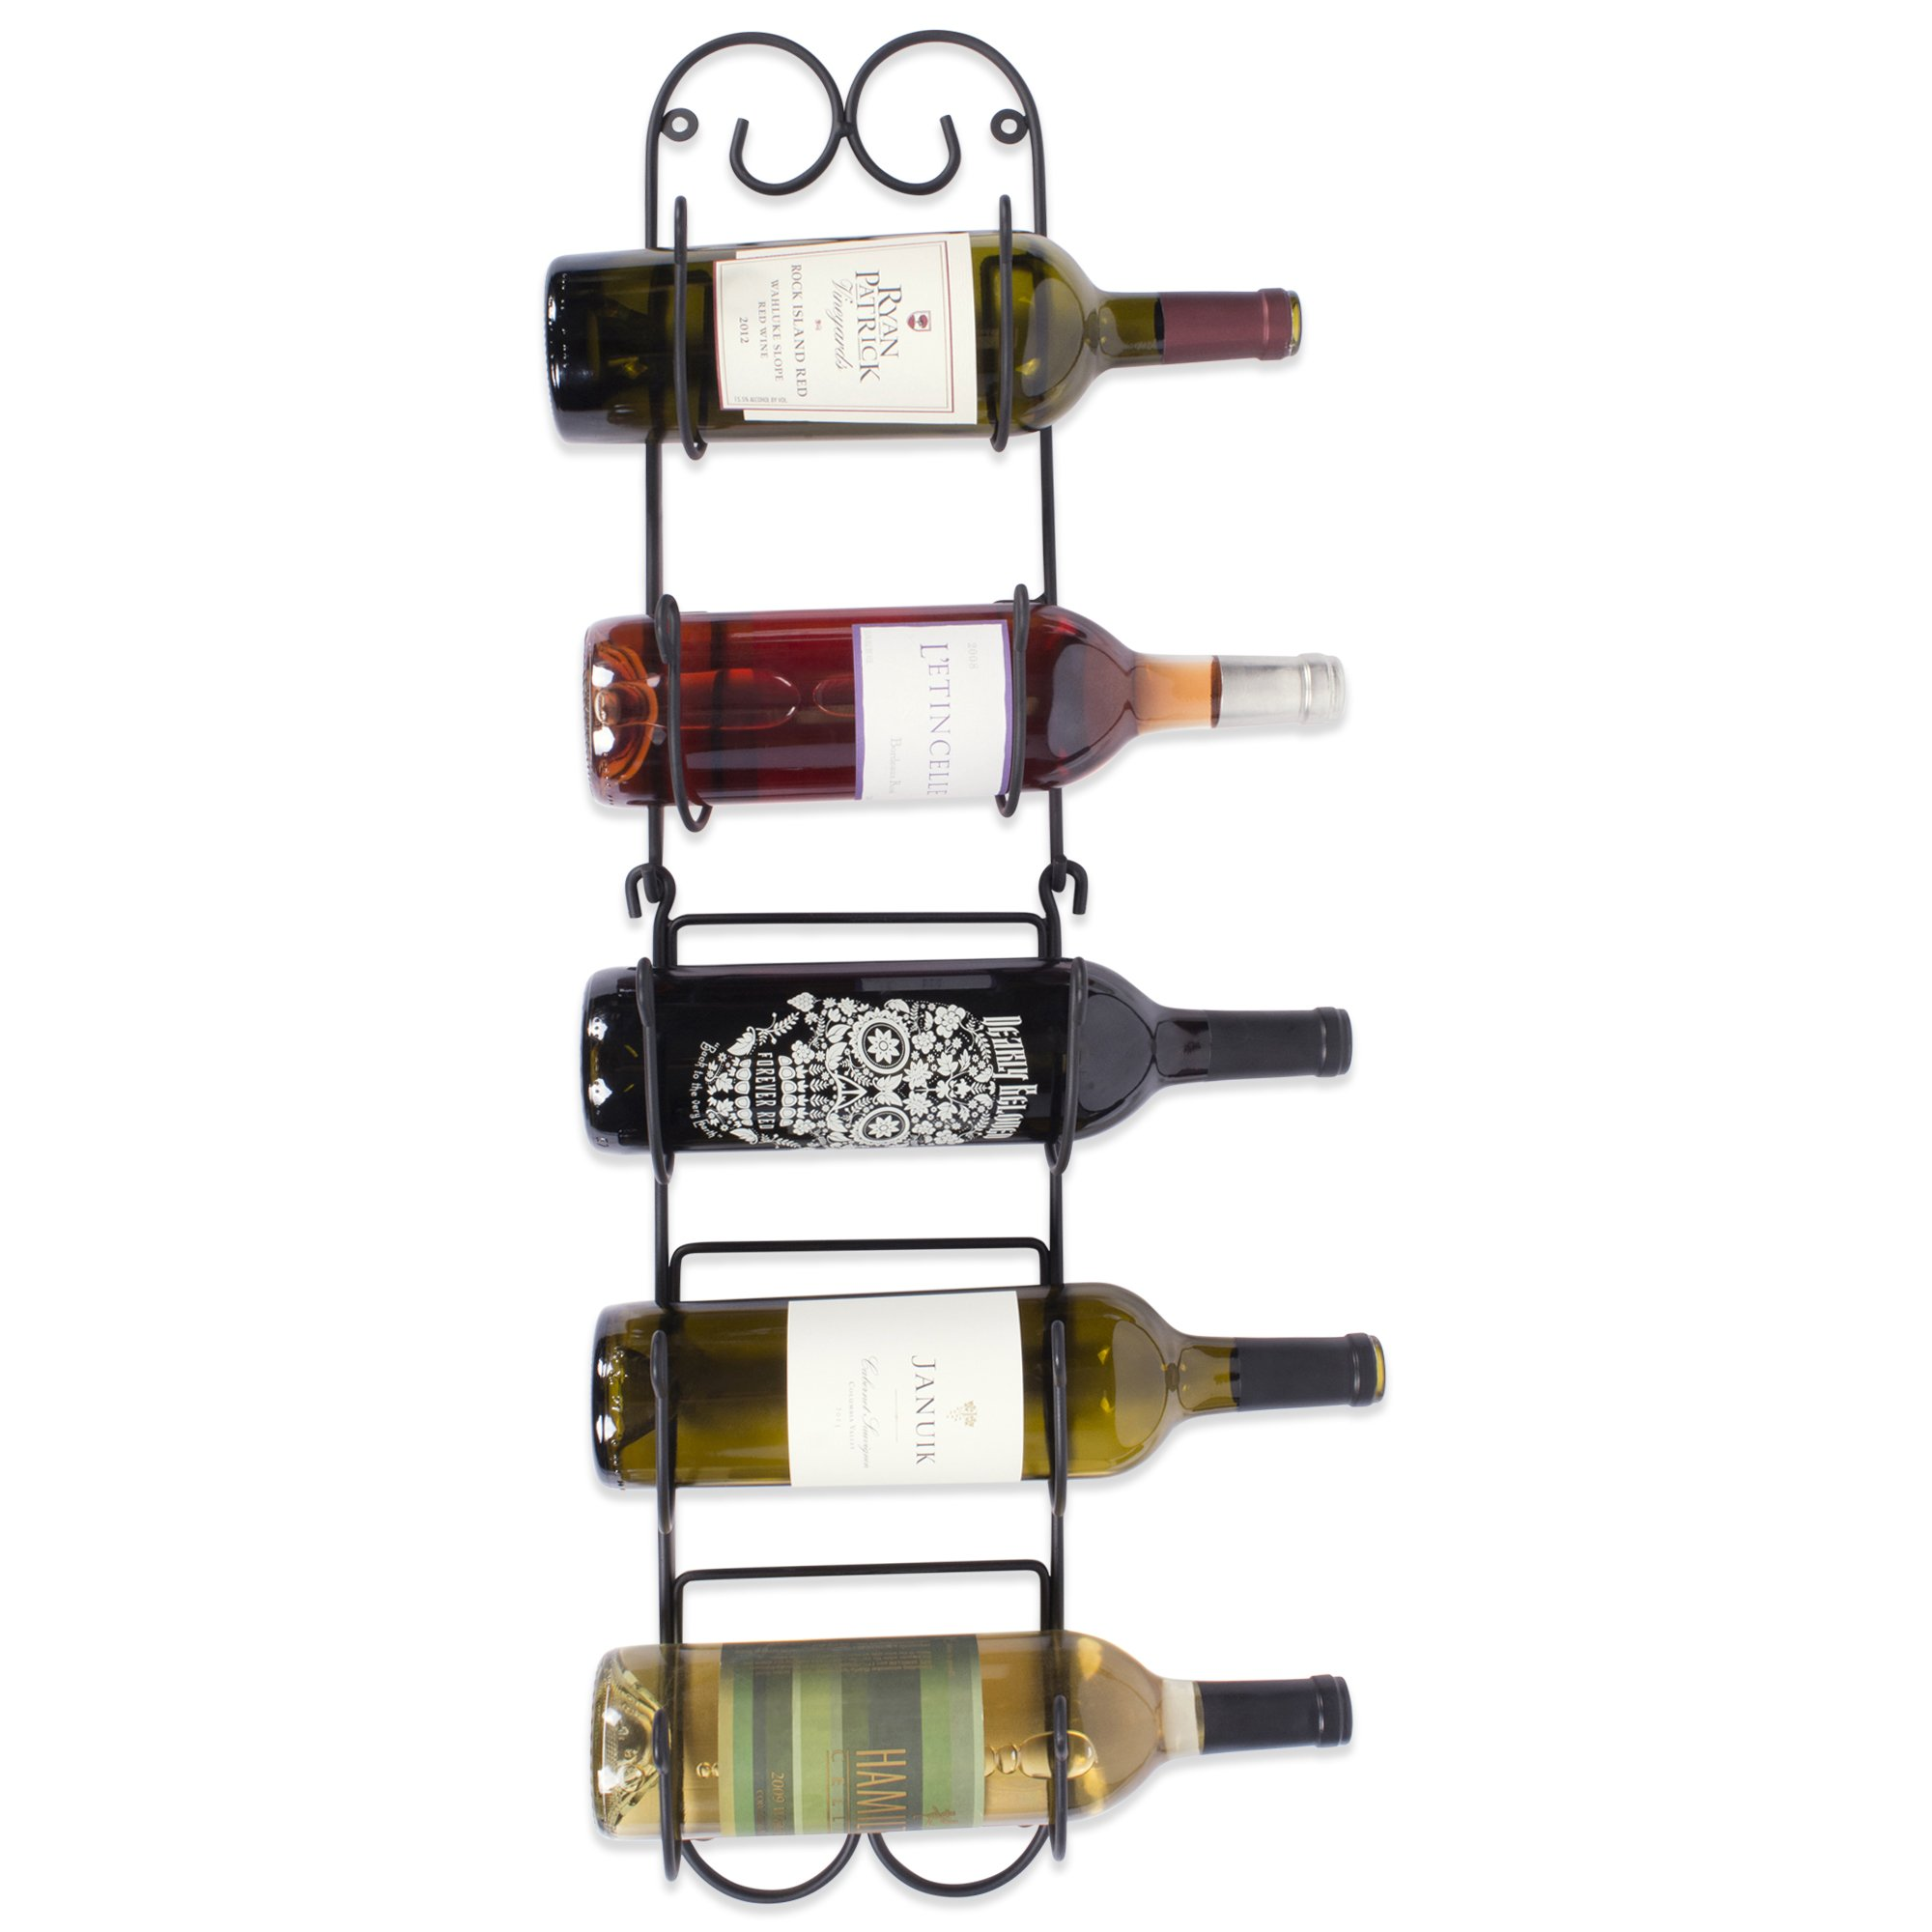 Home Traditions Z01662 Wall Mounted Wine Rack Holds up to 6 Bottles, Small, Black